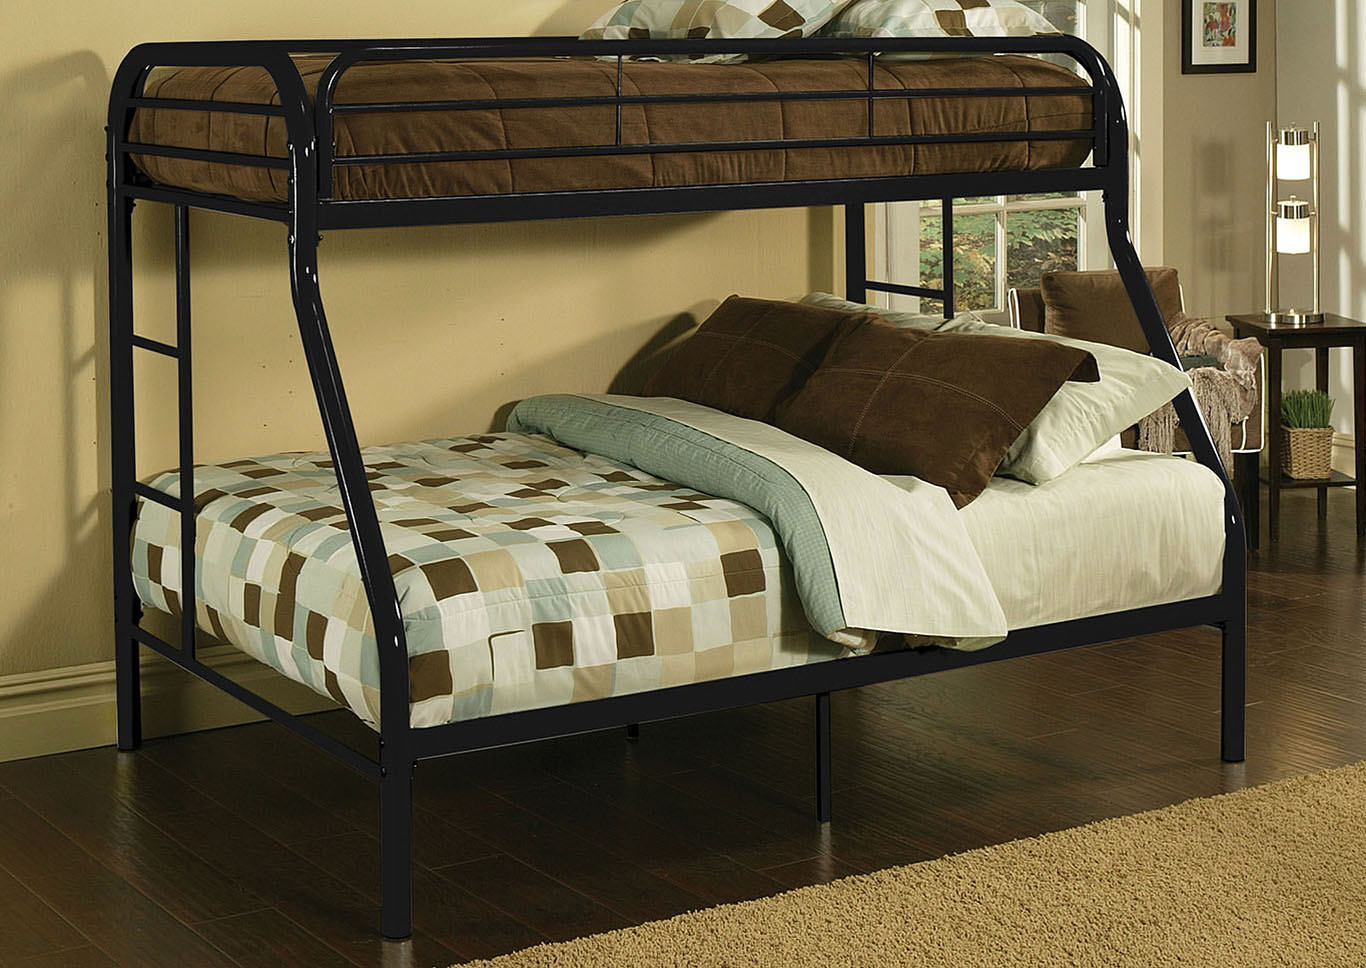 Tritan Black Twin XL/Queen Metal Bunk Bed,Acme